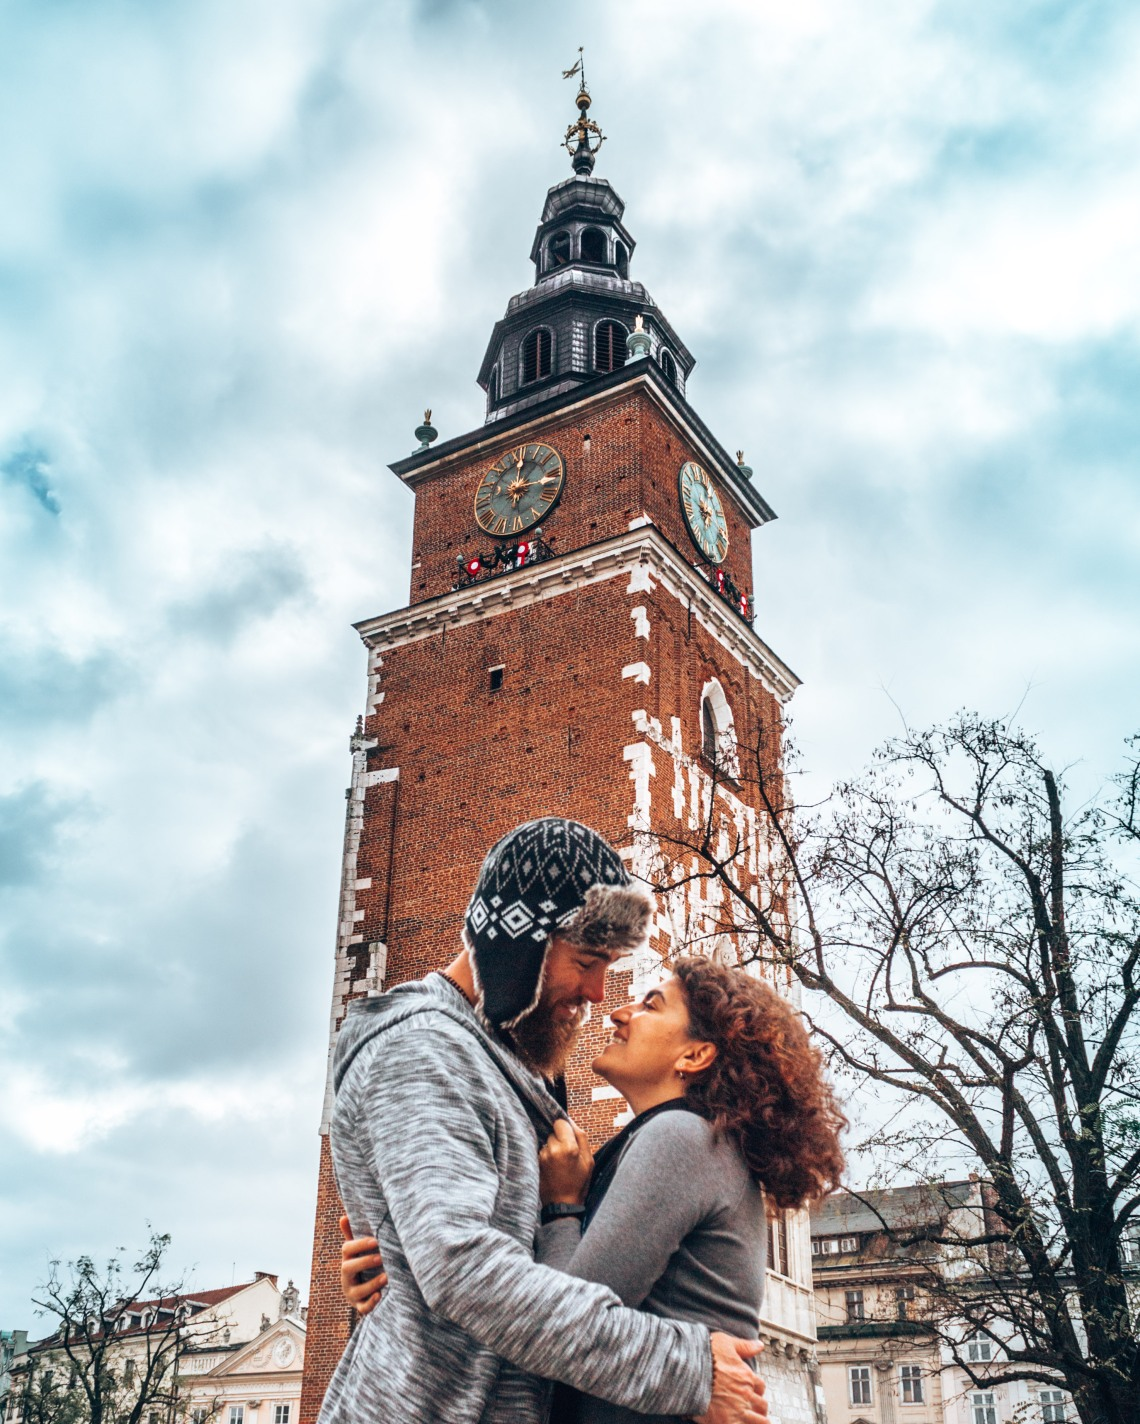 Wediditourway lovingly embracing in front of the Town Hall Tower in Krakow, Poland